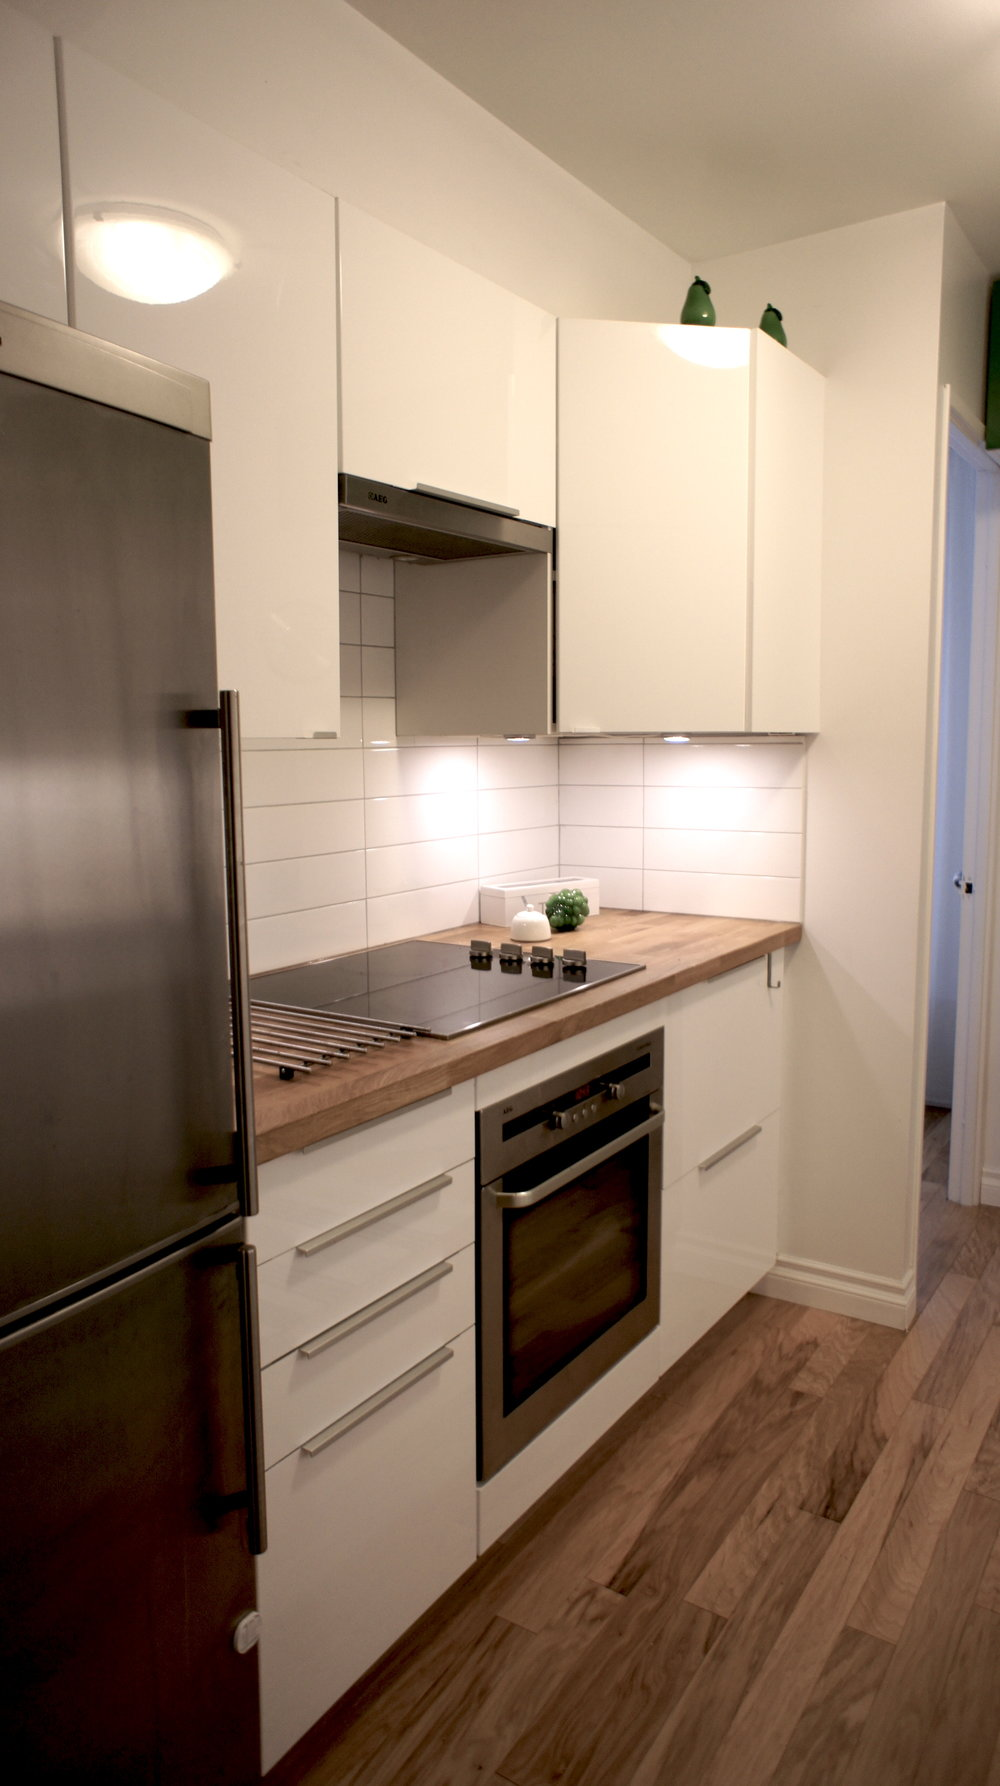 condo kitchen cooking area.jpg